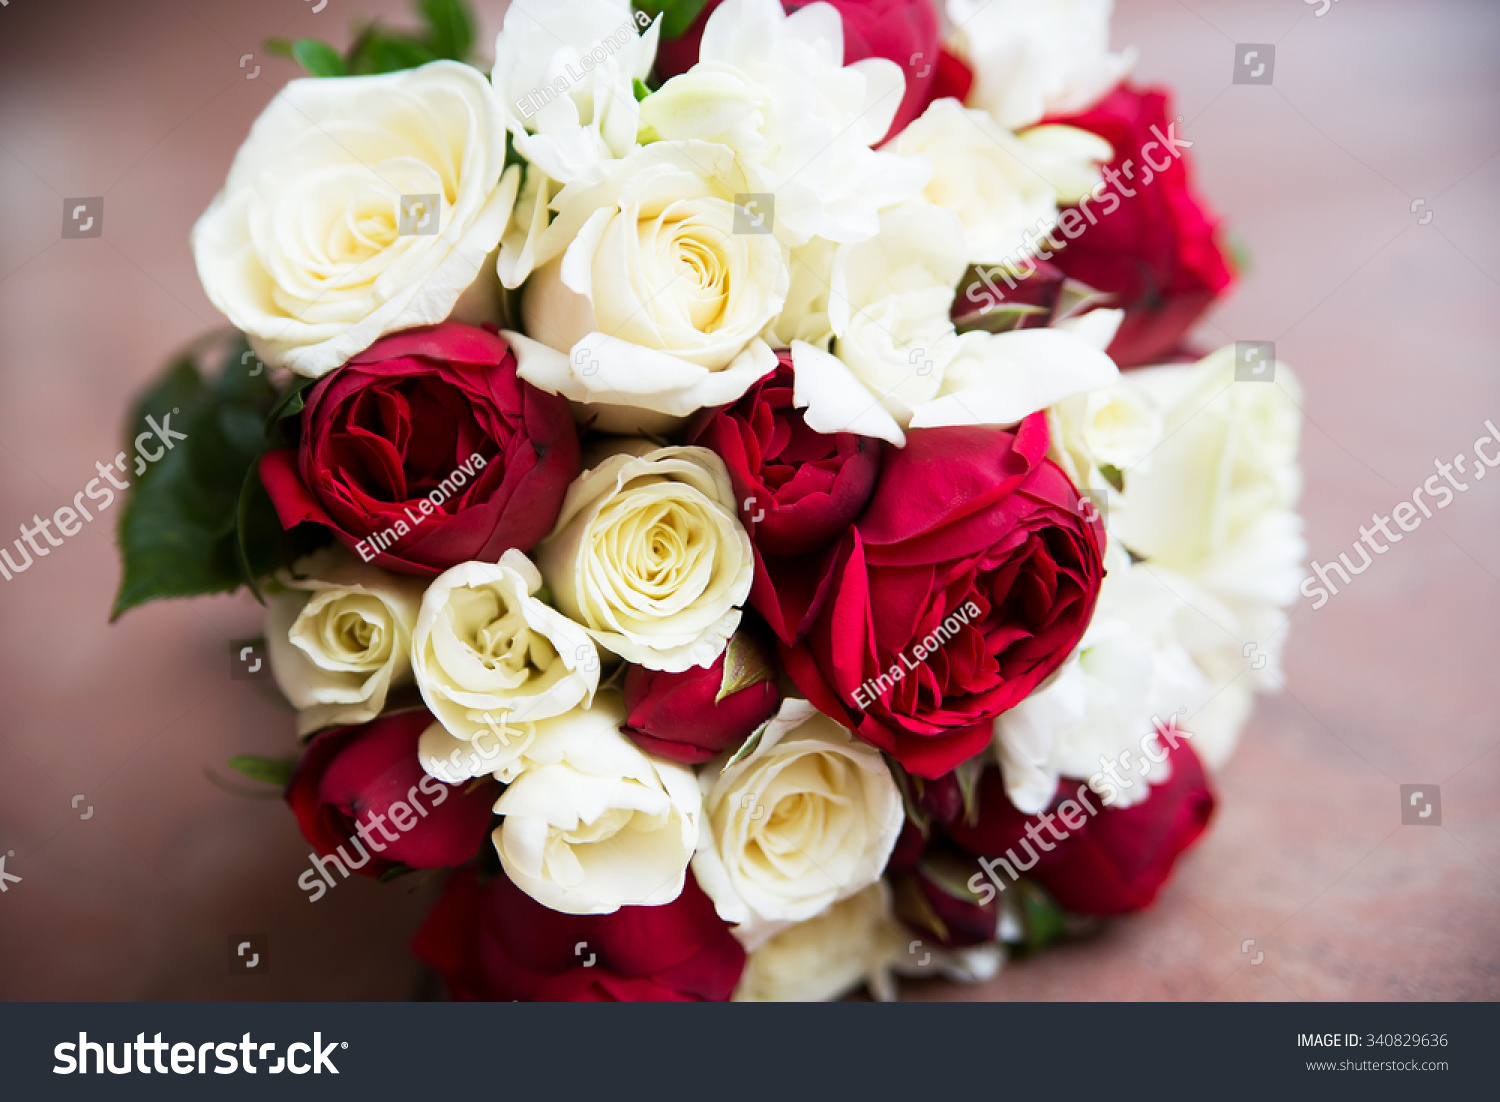 Wedding Flower Bouquet With Pink Red And White Roses Ez Canvas